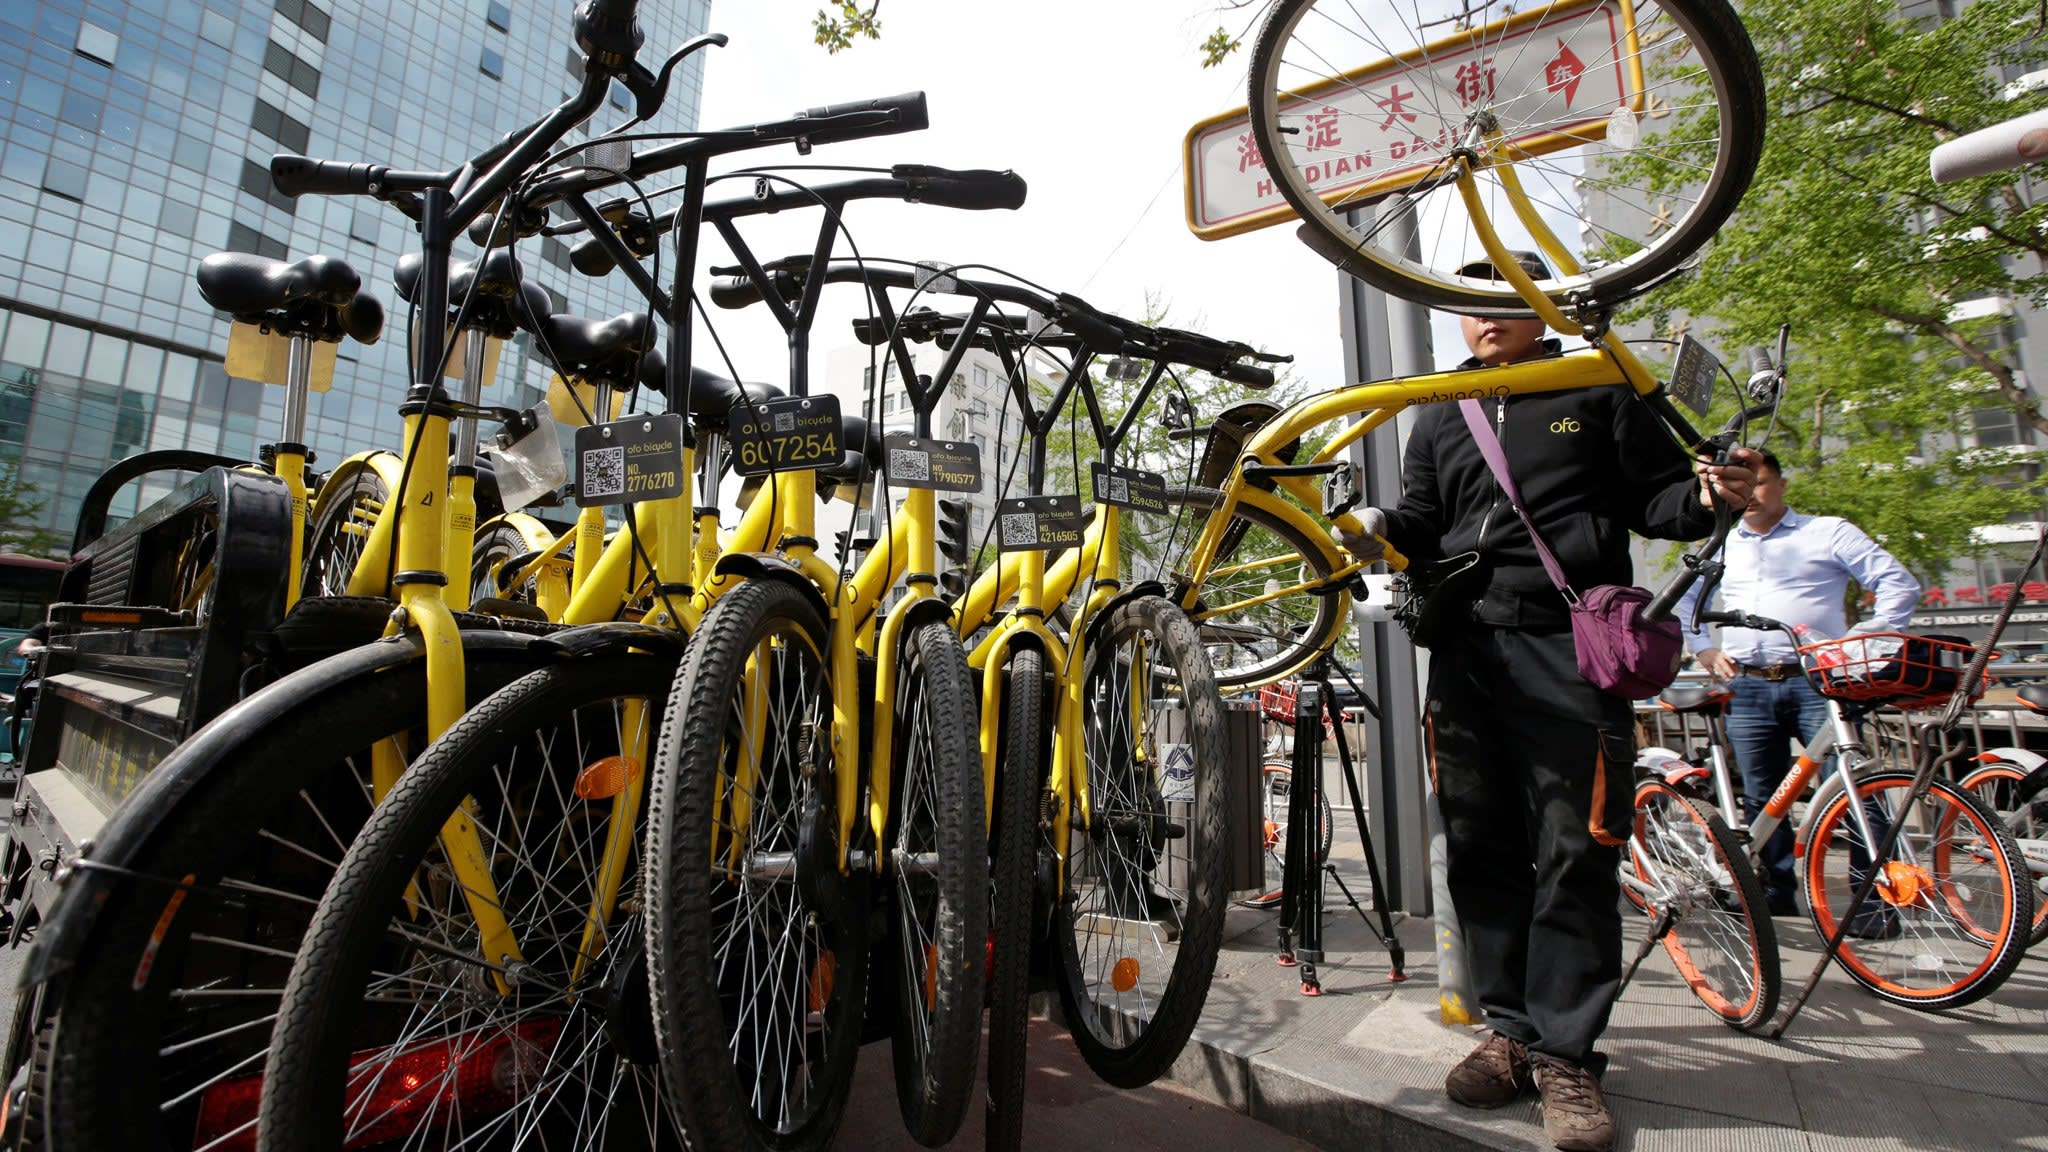 Chinese bike-share group Ofo sued for alleged $10m in unpaid bills